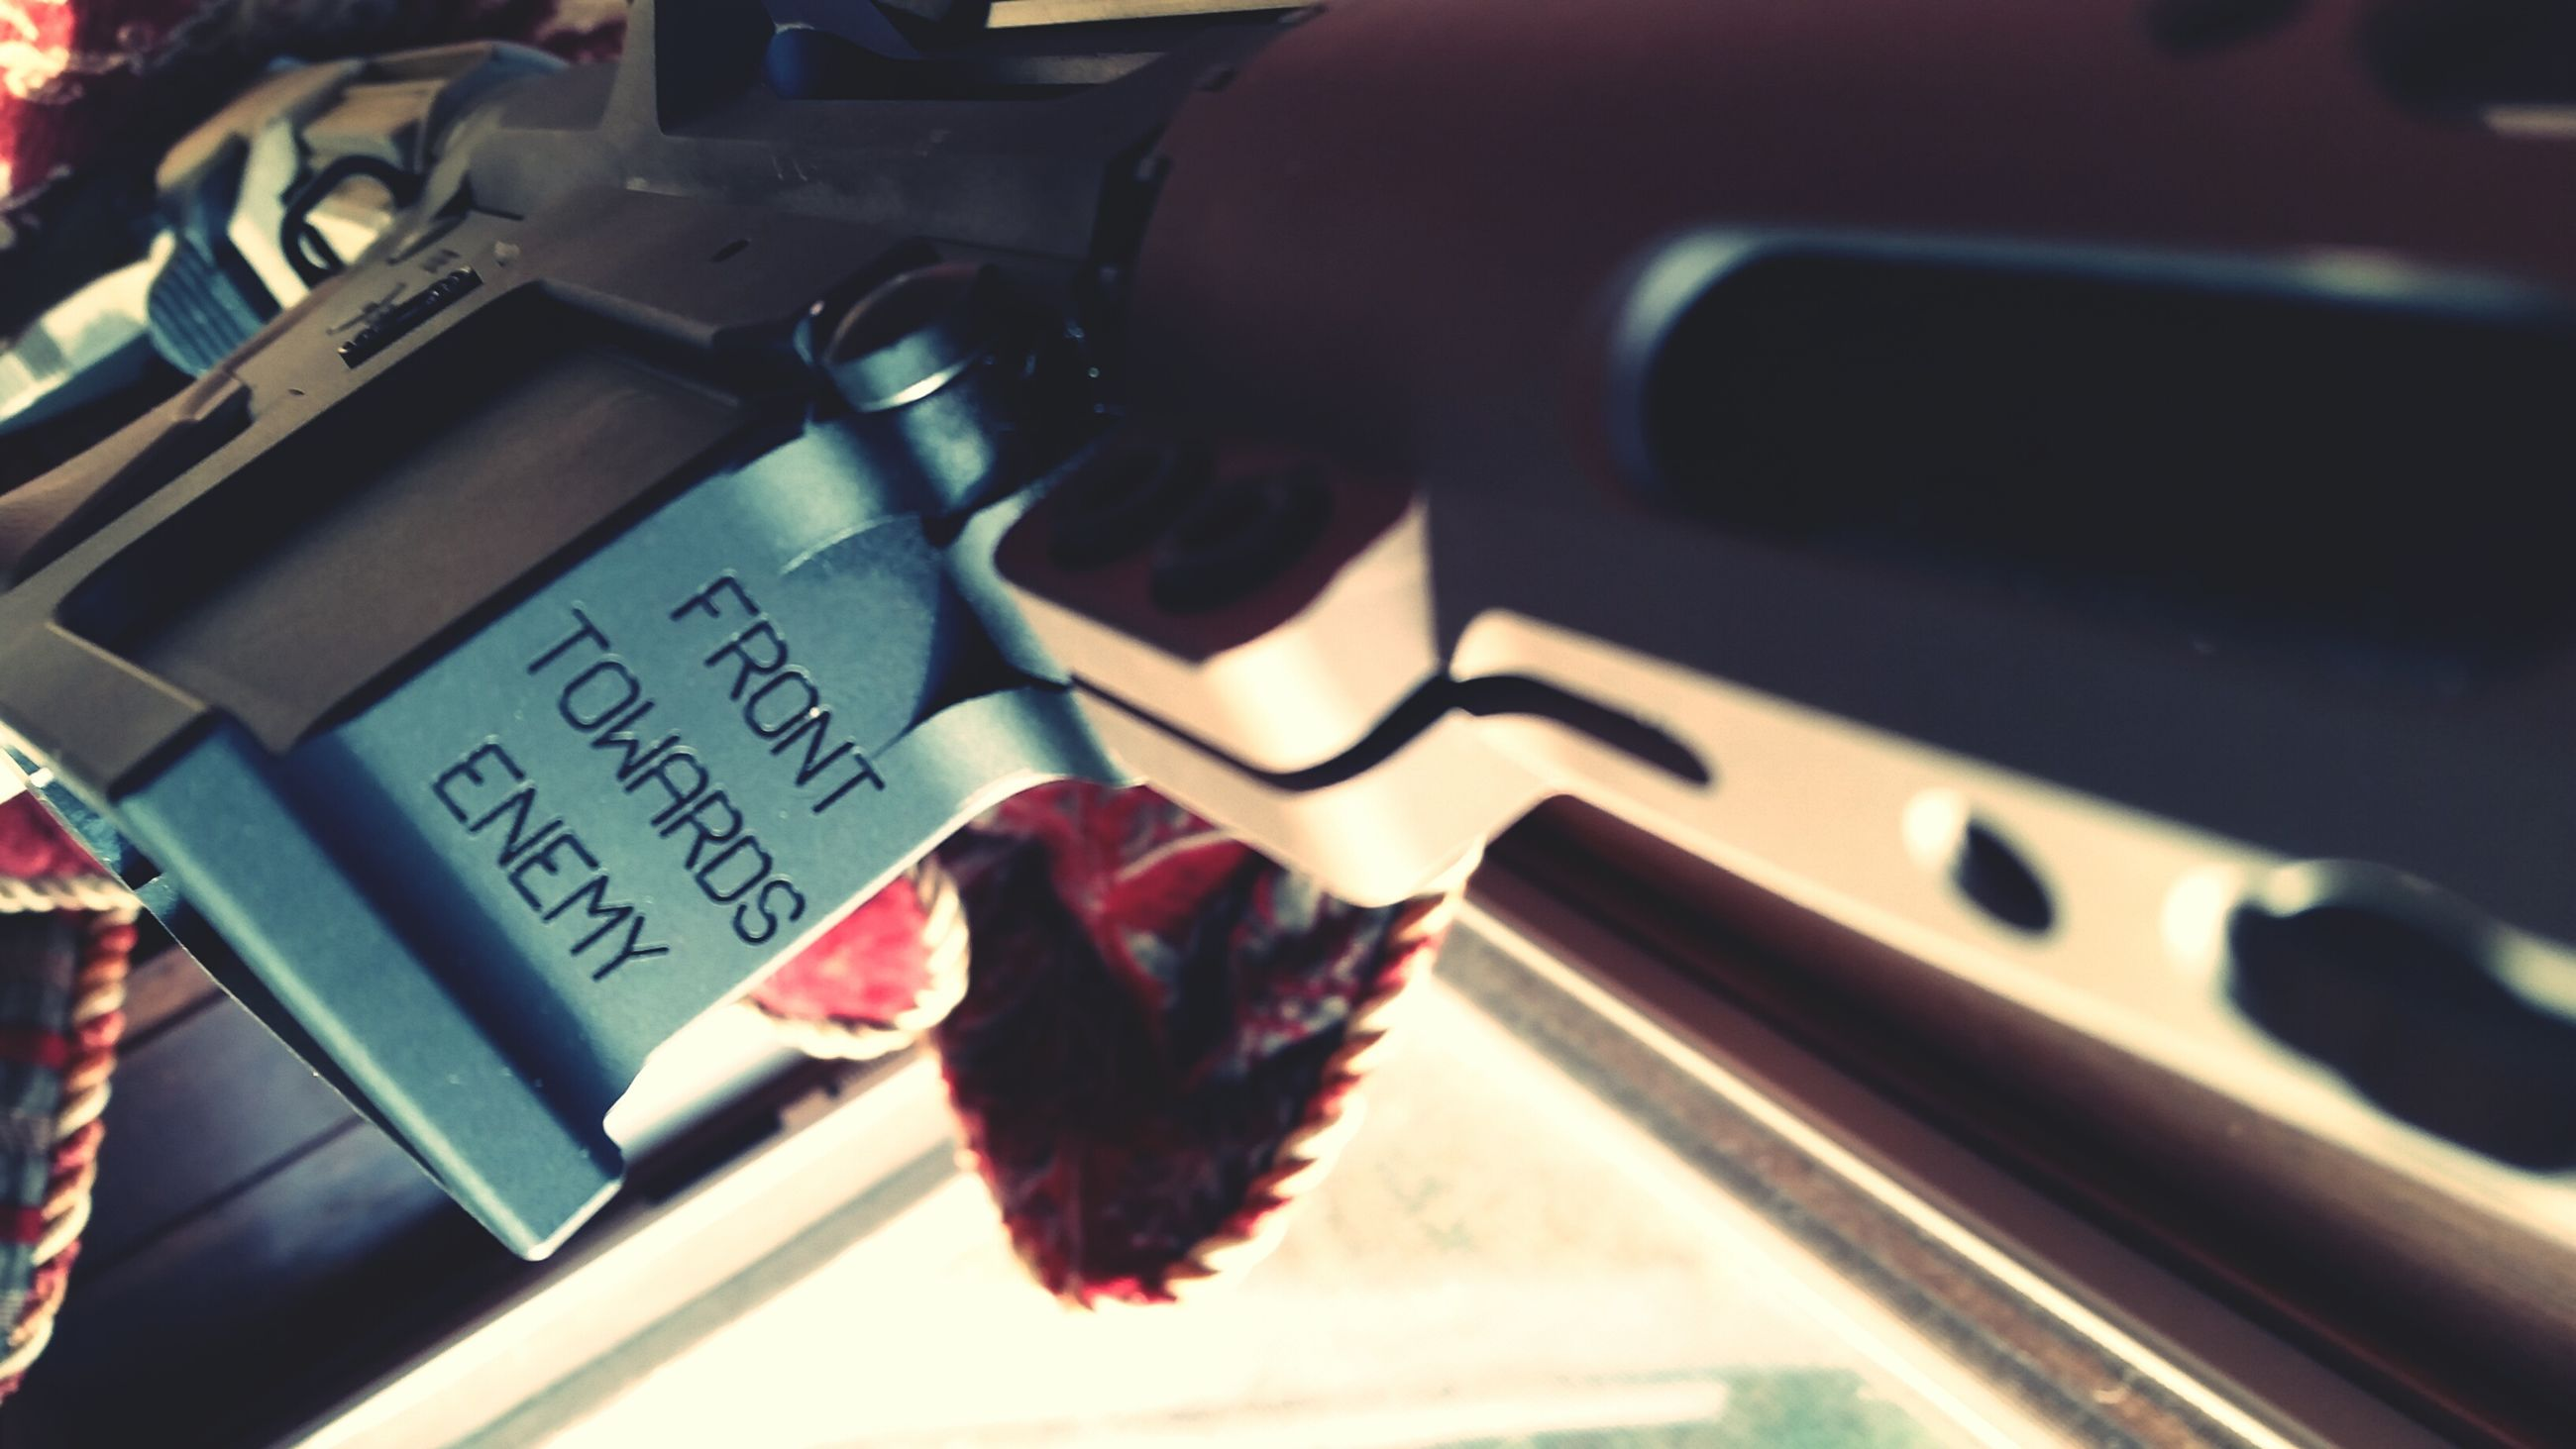 indoors, close-up, car, transportation, land vehicle, mode of transport, text, no people, communication, focus on foreground, selective focus, high angle view, western script, part of, still life, red, glass - material, detail, car interior, day